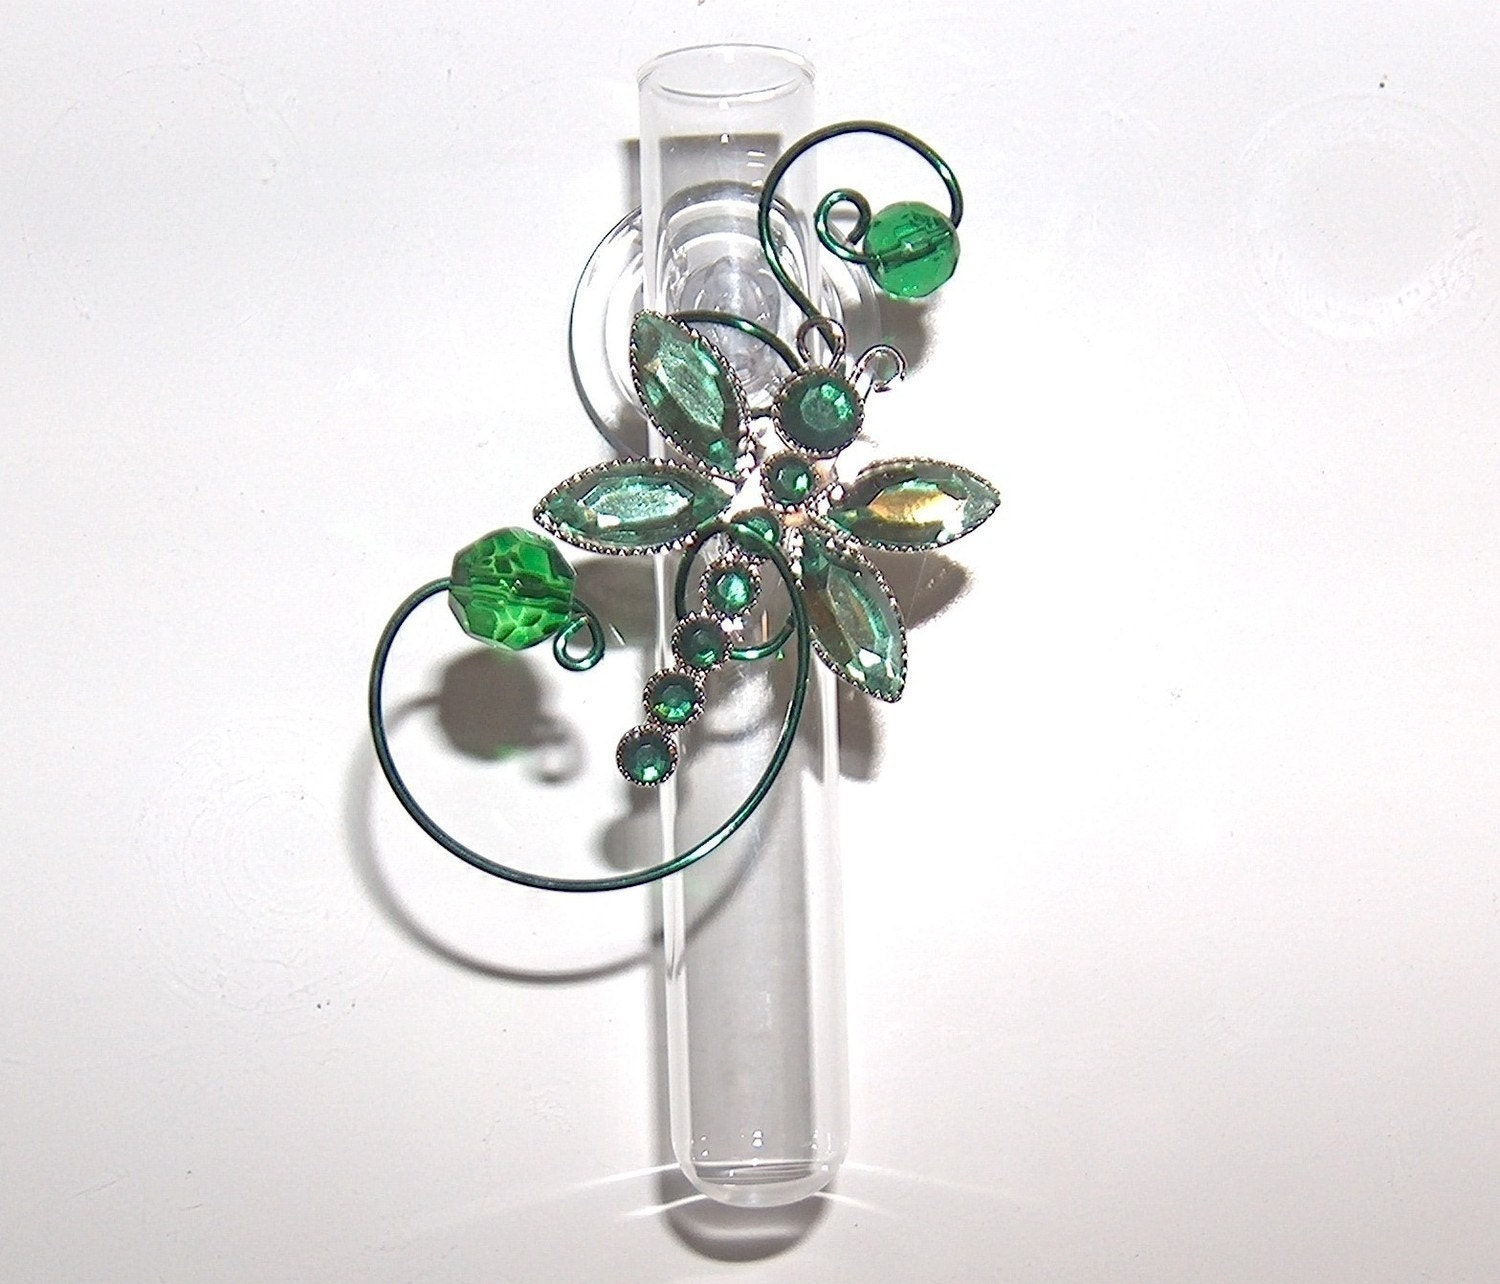 Suction Cup Vases Glass Rooting Vases Suction Cup Bud Vases